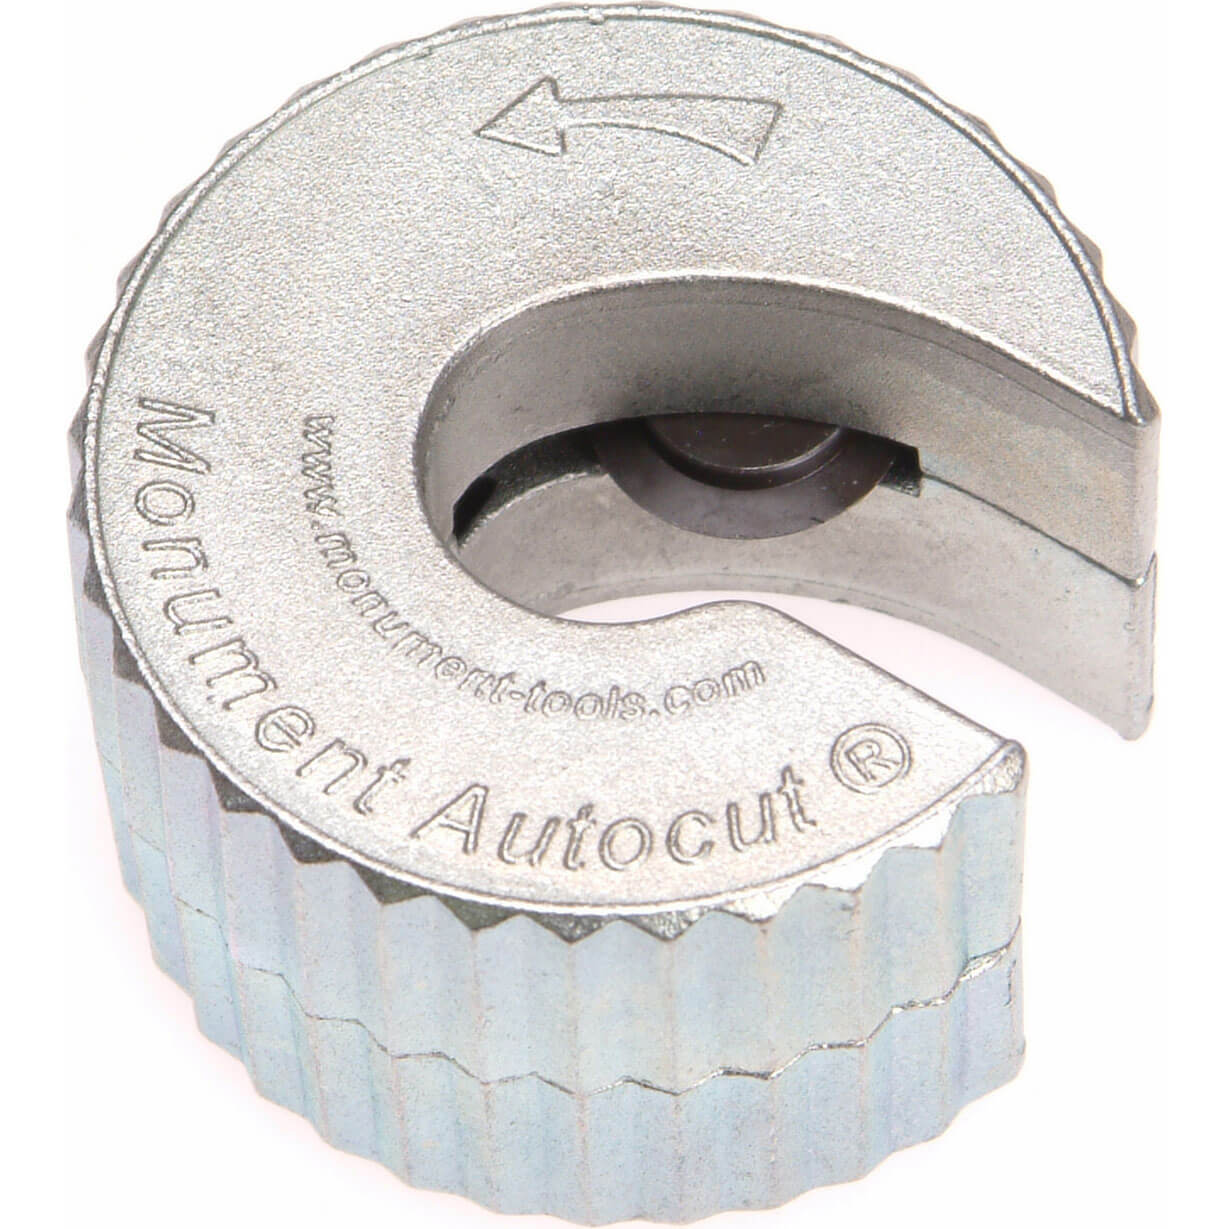 Image of Monument Autocut Copper Pipe Cutter 22mm